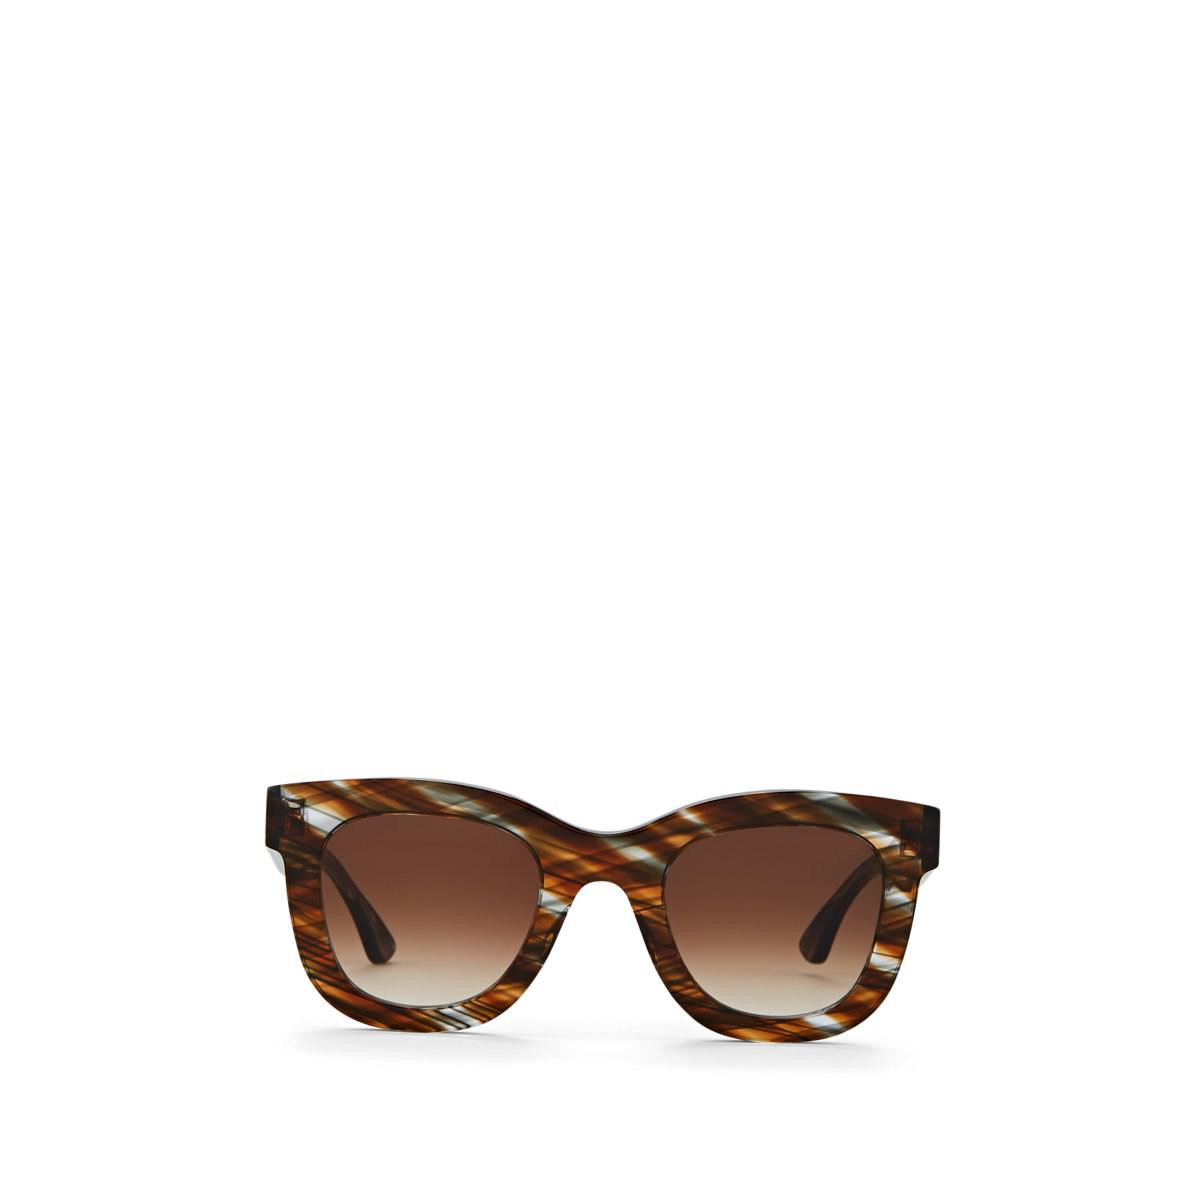 a0d94a5b13 Lyst - Thierry Lasry Gambly Sunglasses in Brown